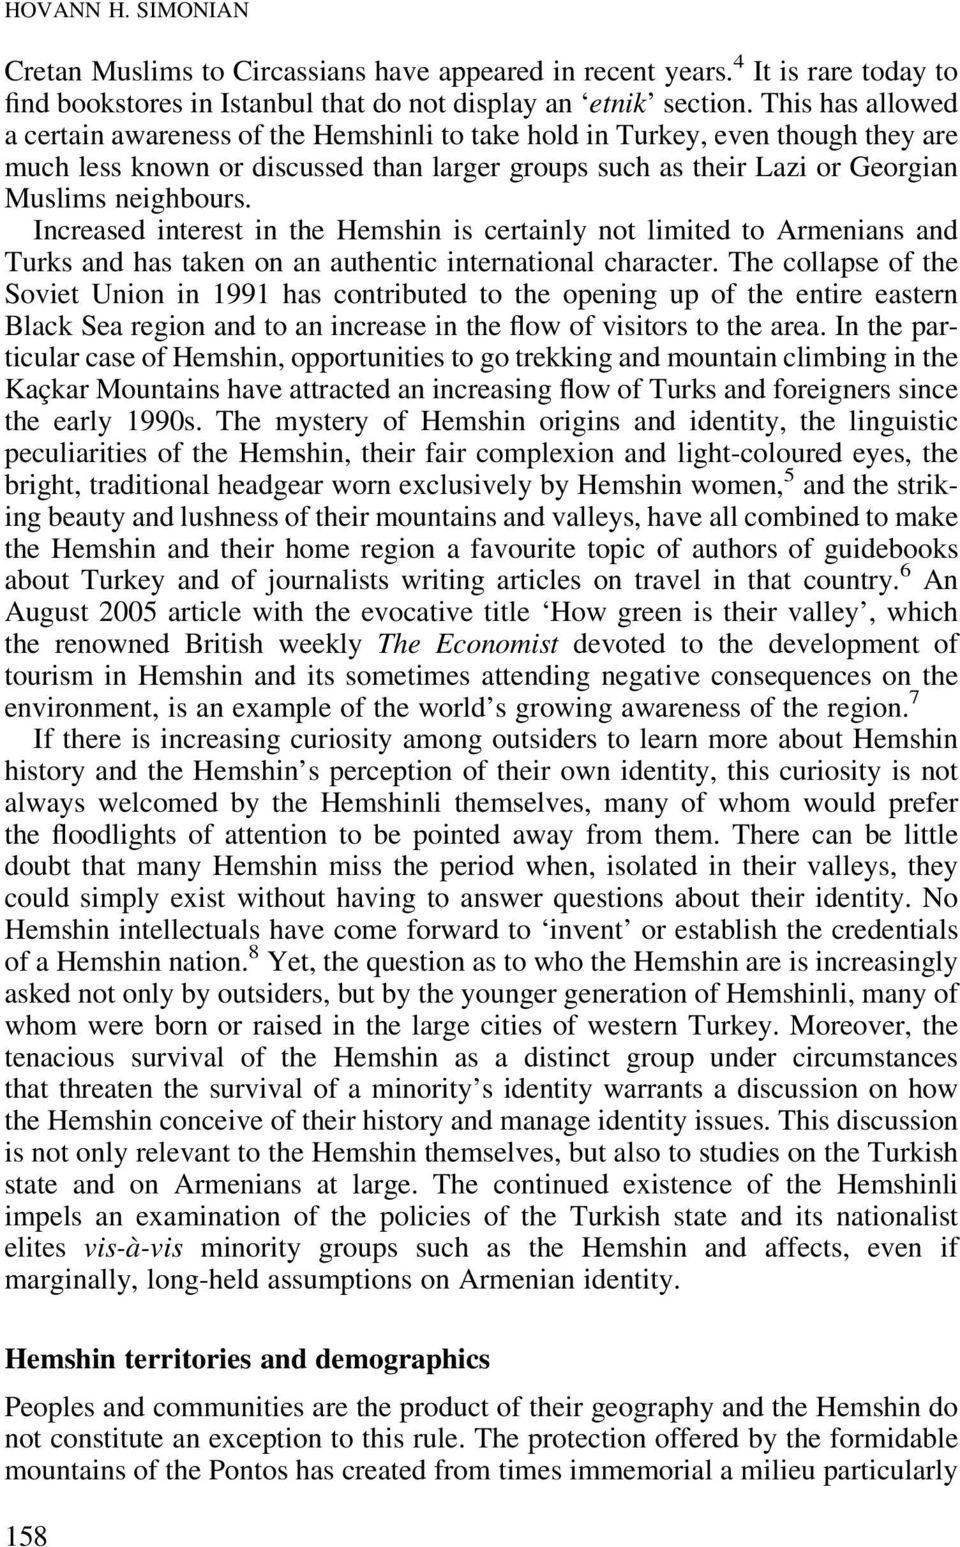 Increased interest in the Hemshin is certainly not limited to Armenians and Turks and has taken on an authentic international character.